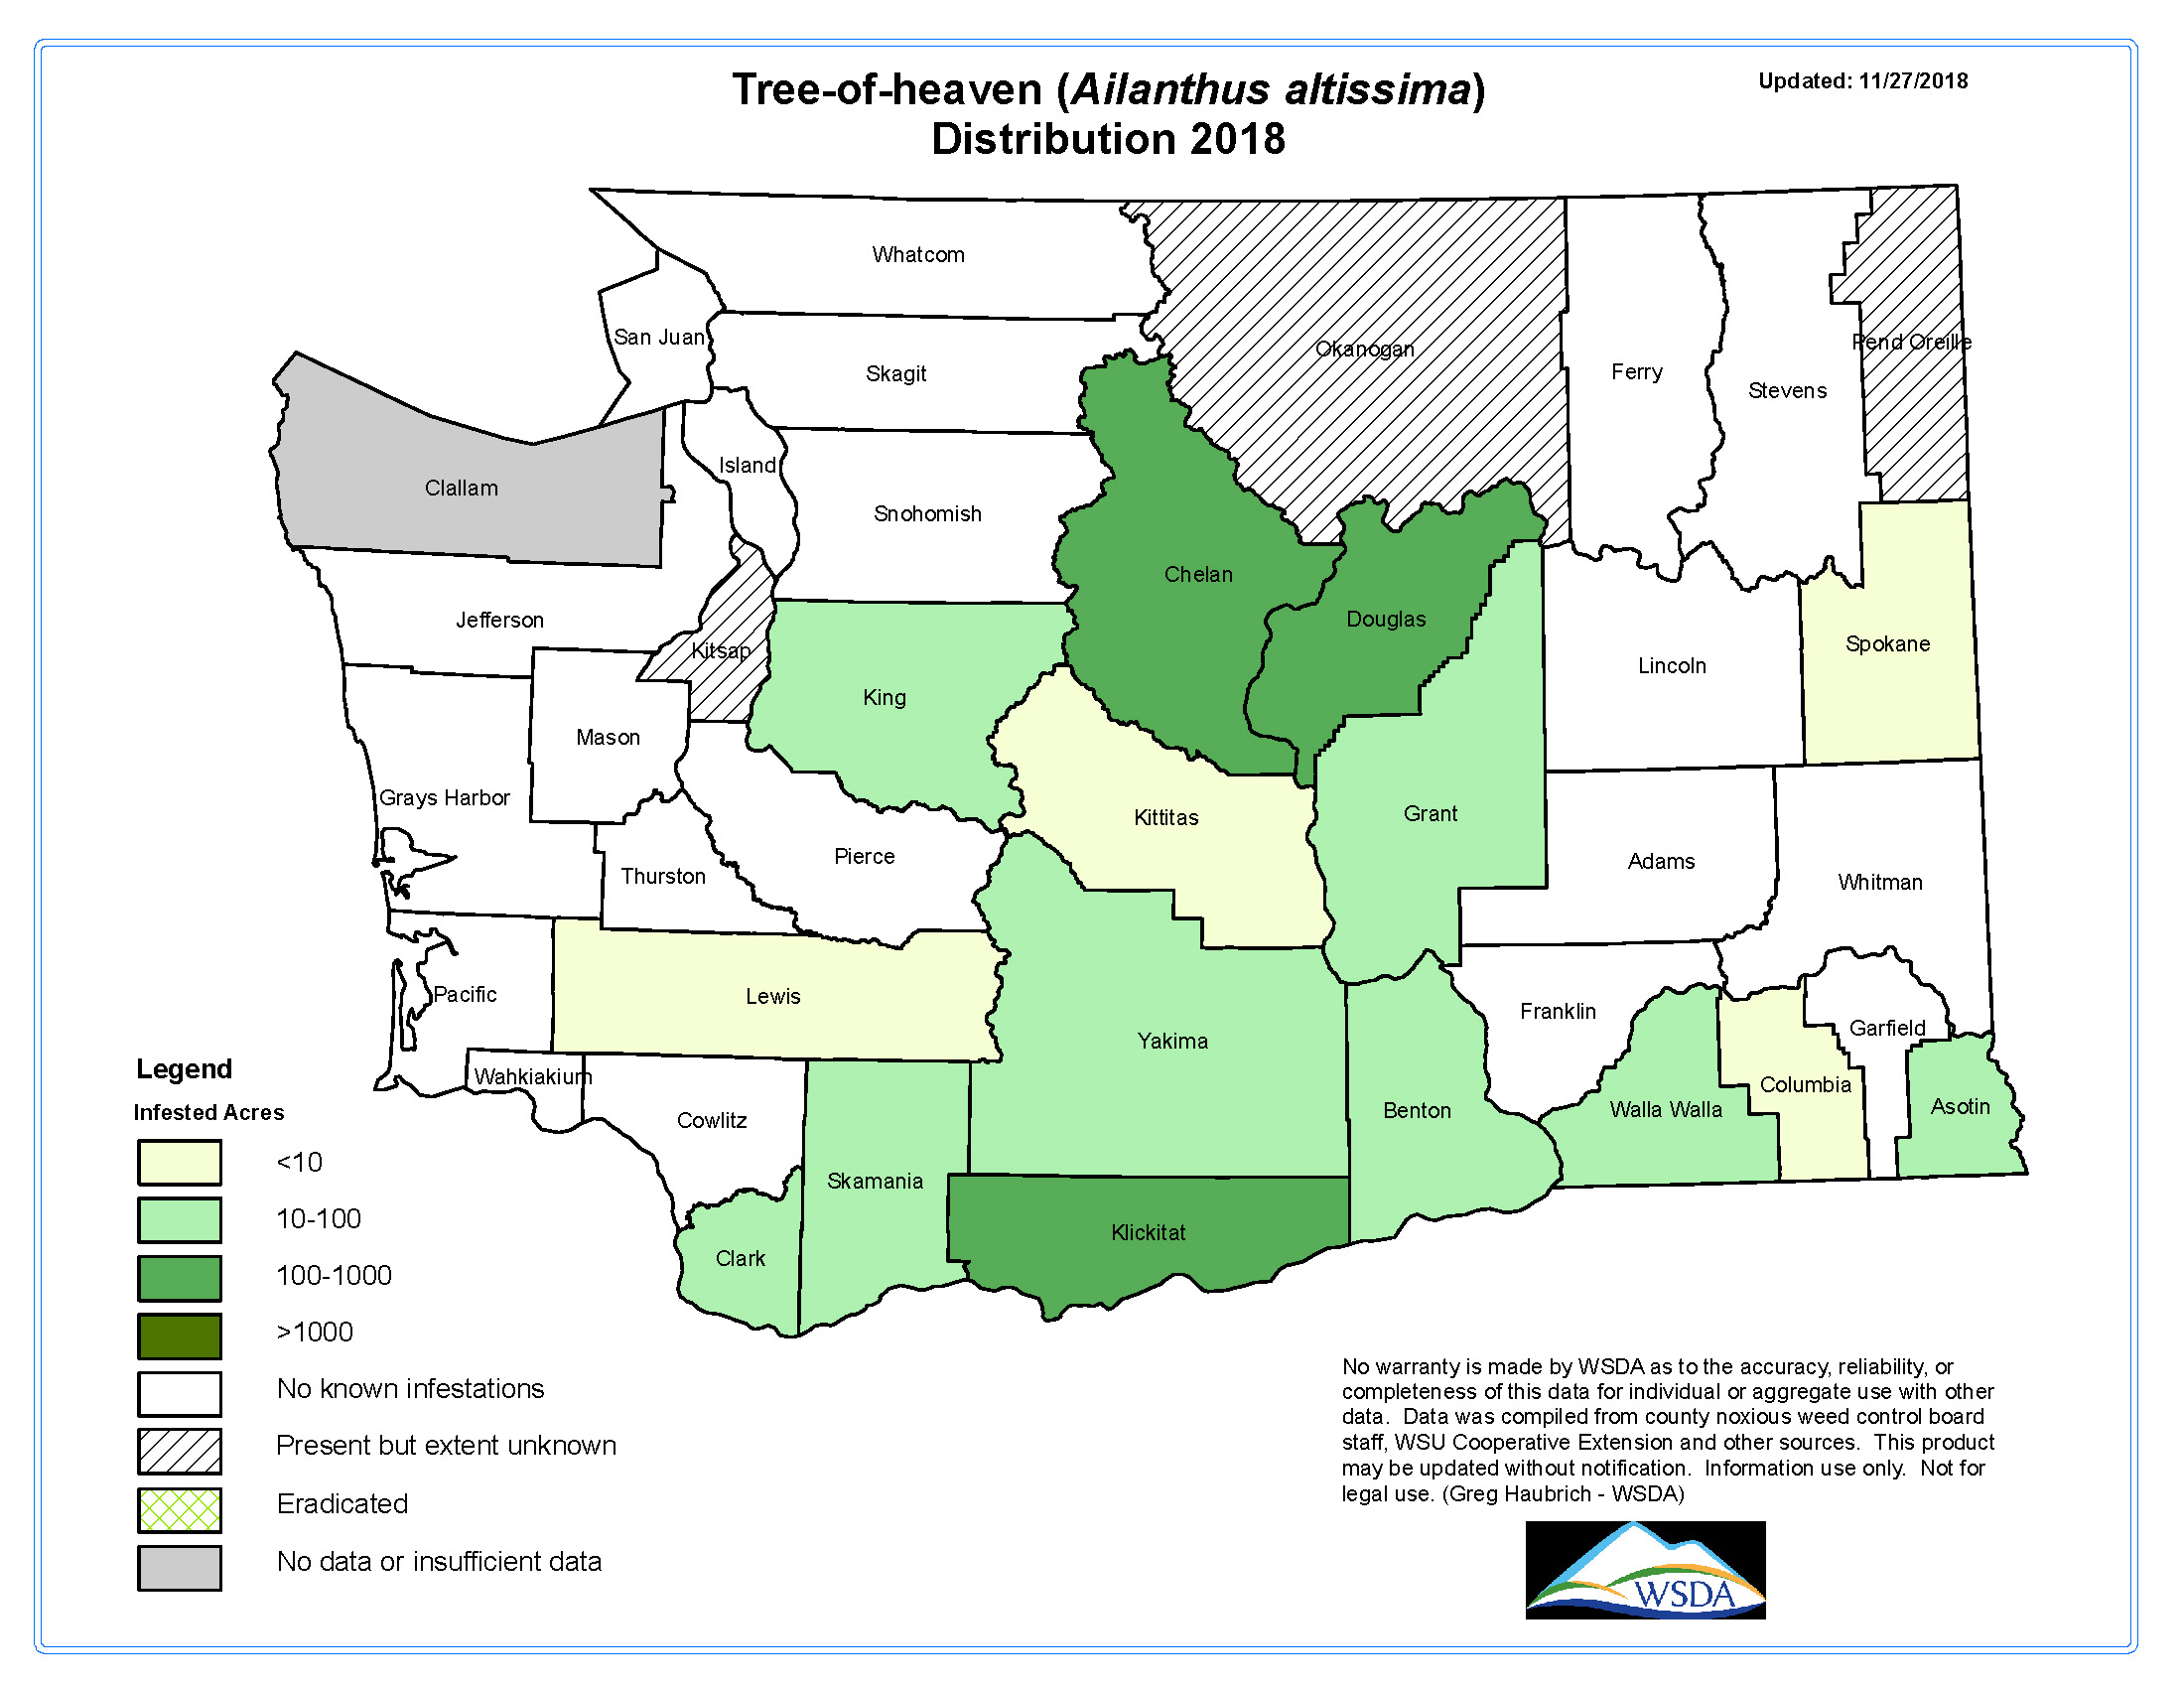 Tree-of-heaven distribution by county in 2018 in the state of Washington.